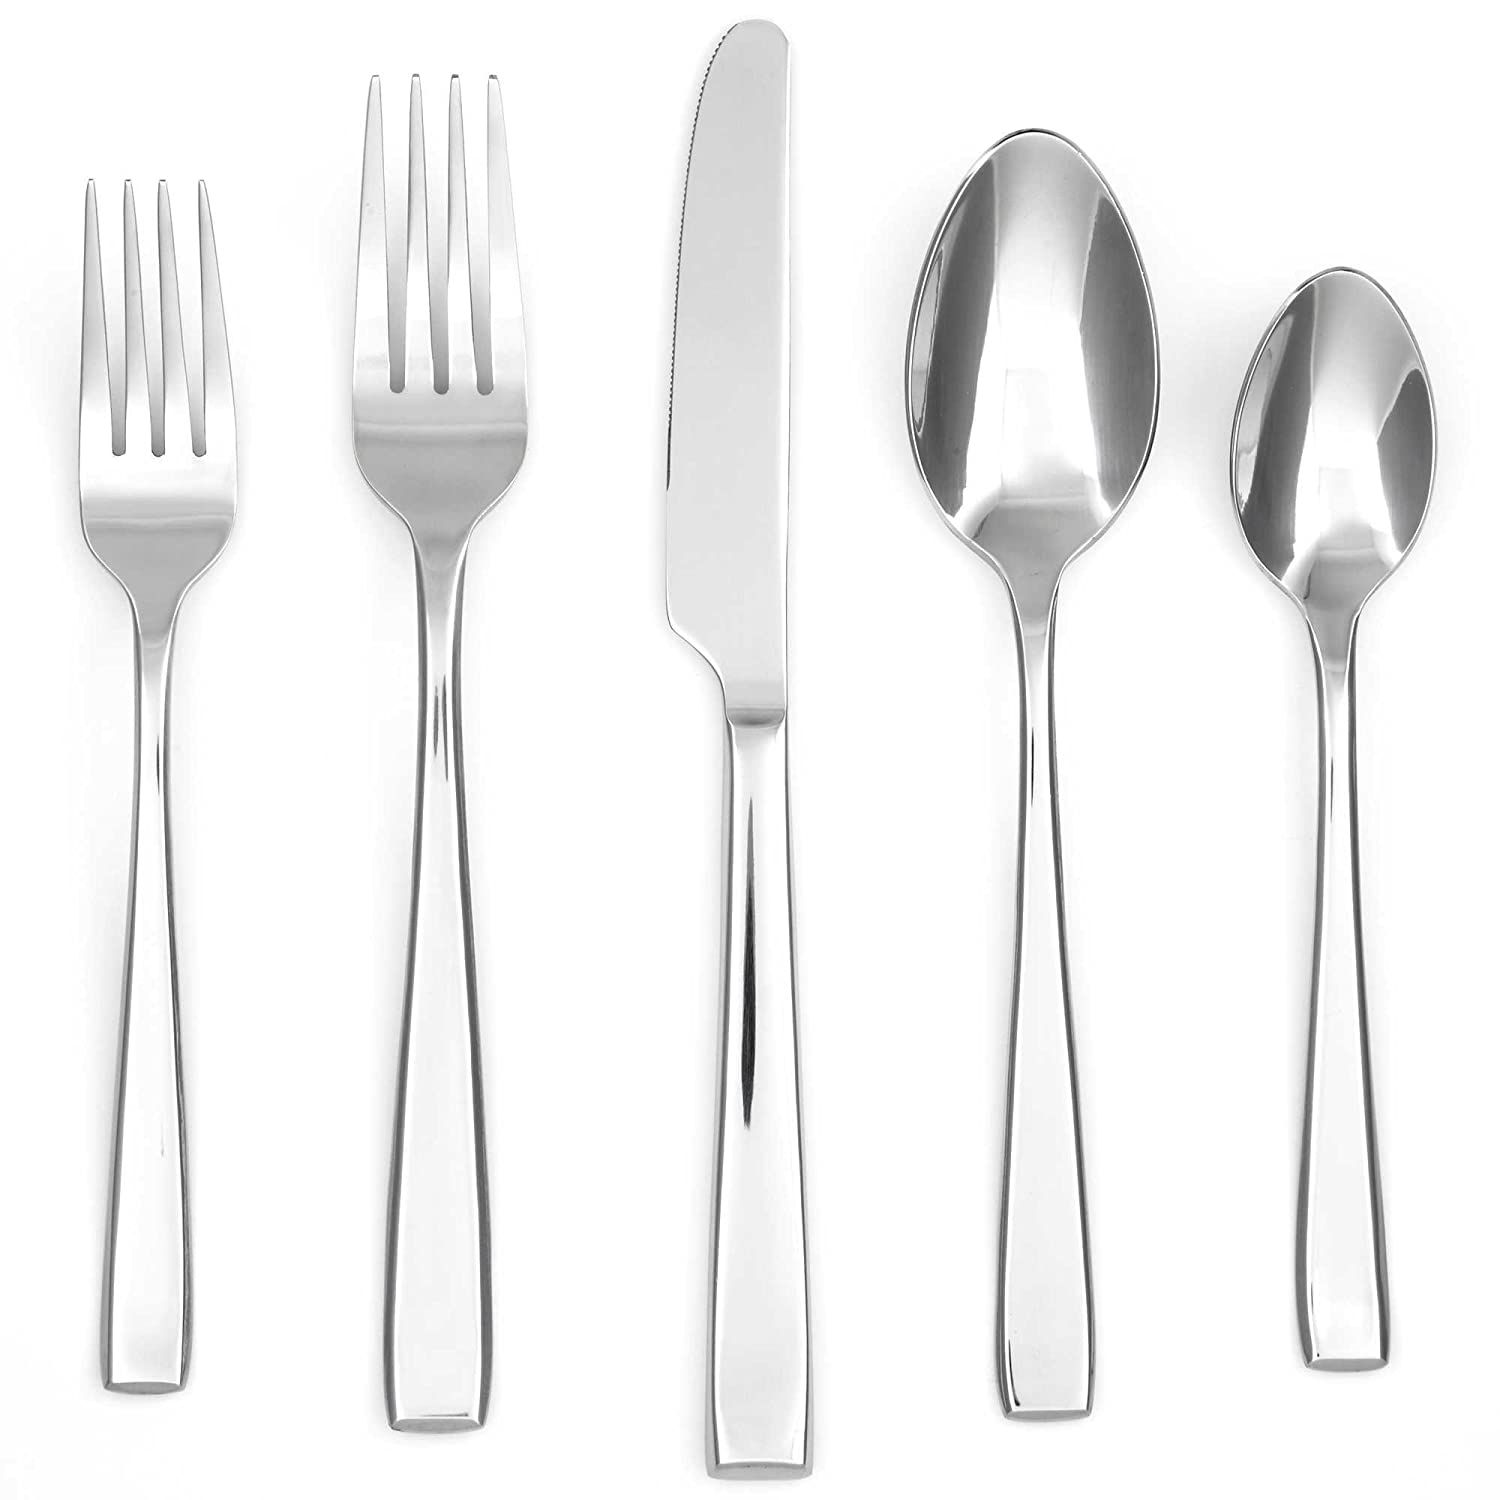 amazoncom cambridge silversmiths logan mirror piece flatware  - amazoncom cambridge silversmiths logan mirror piece flatware setservice for  cell phones  accessories